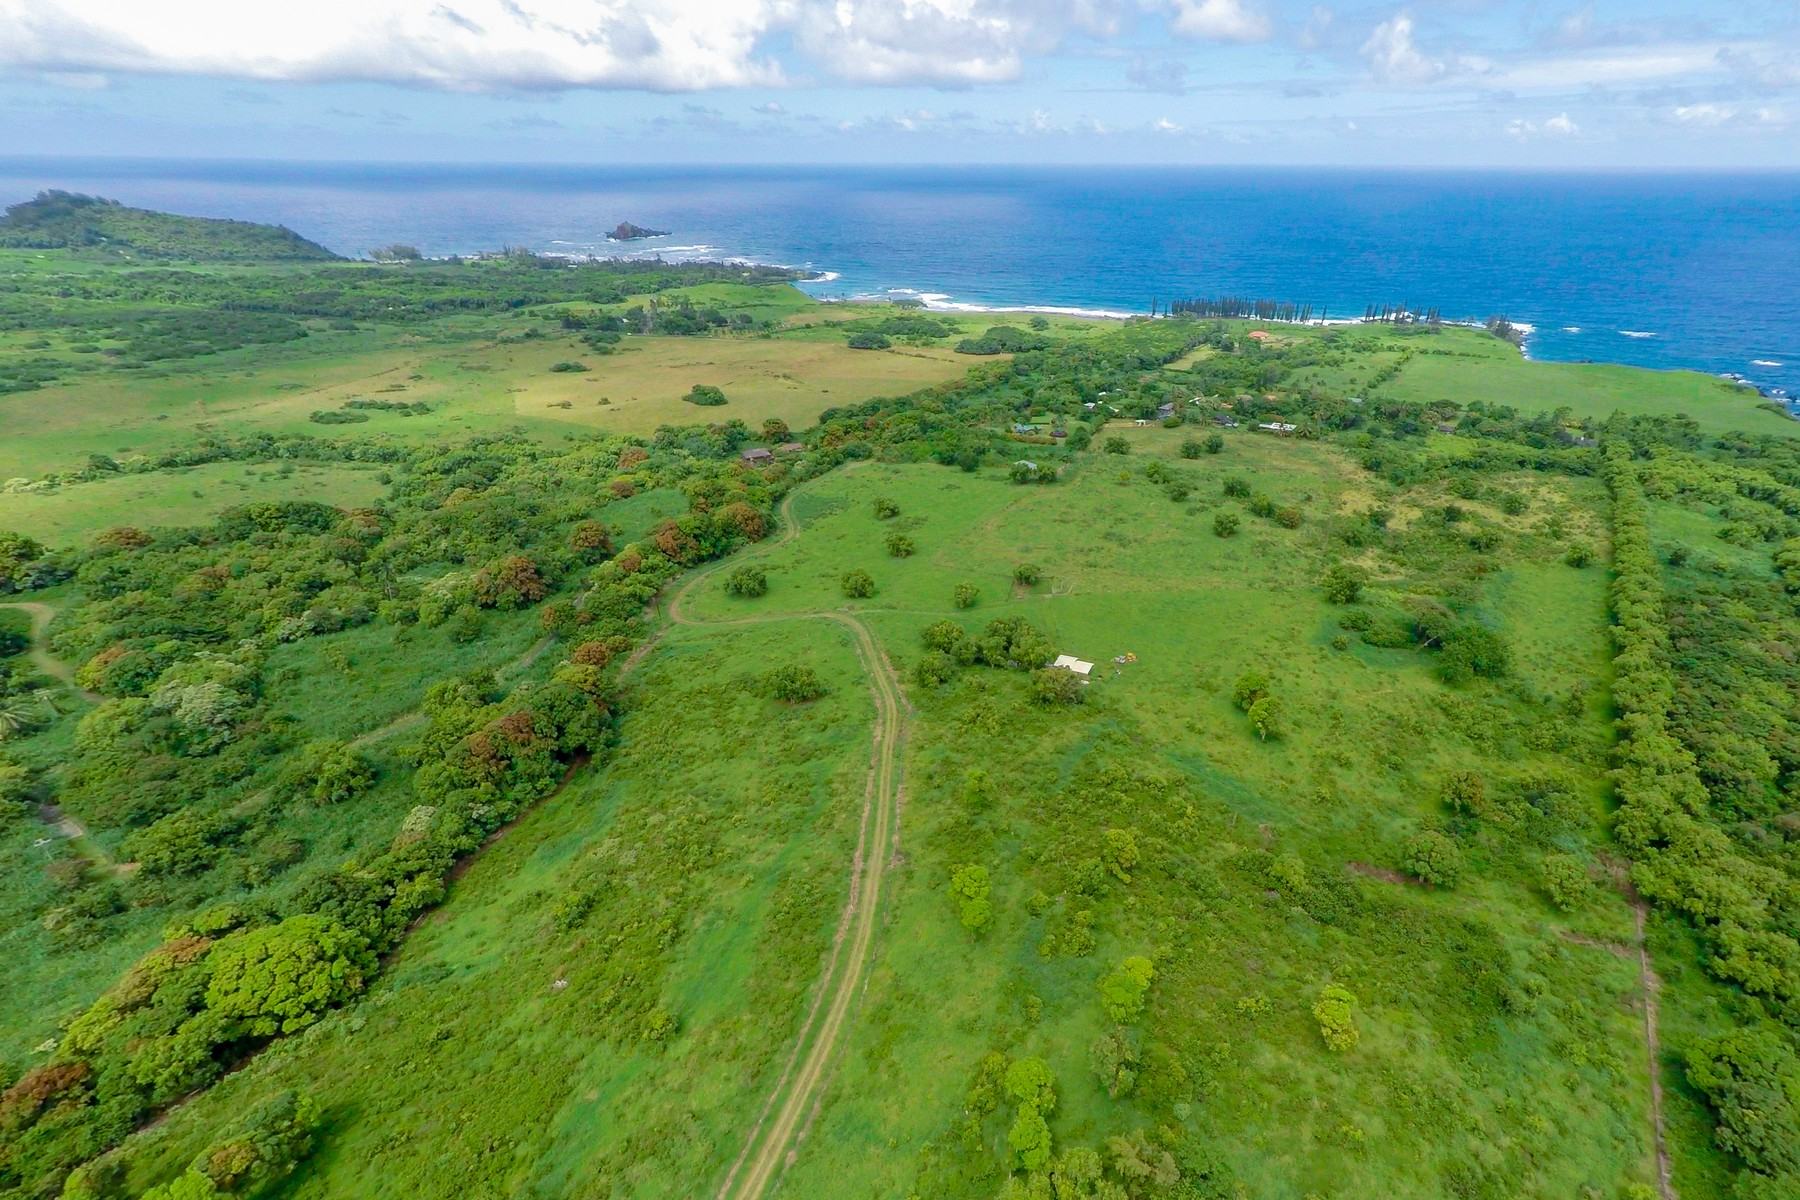 Земля для того Продажа на Over 16 Acres in Beautiful Maka'alae - Hana, Maui 213 Kapia Road, Lot #3-Parcel #68 Hana, Гавайи, 96713 Соединенные Штаты